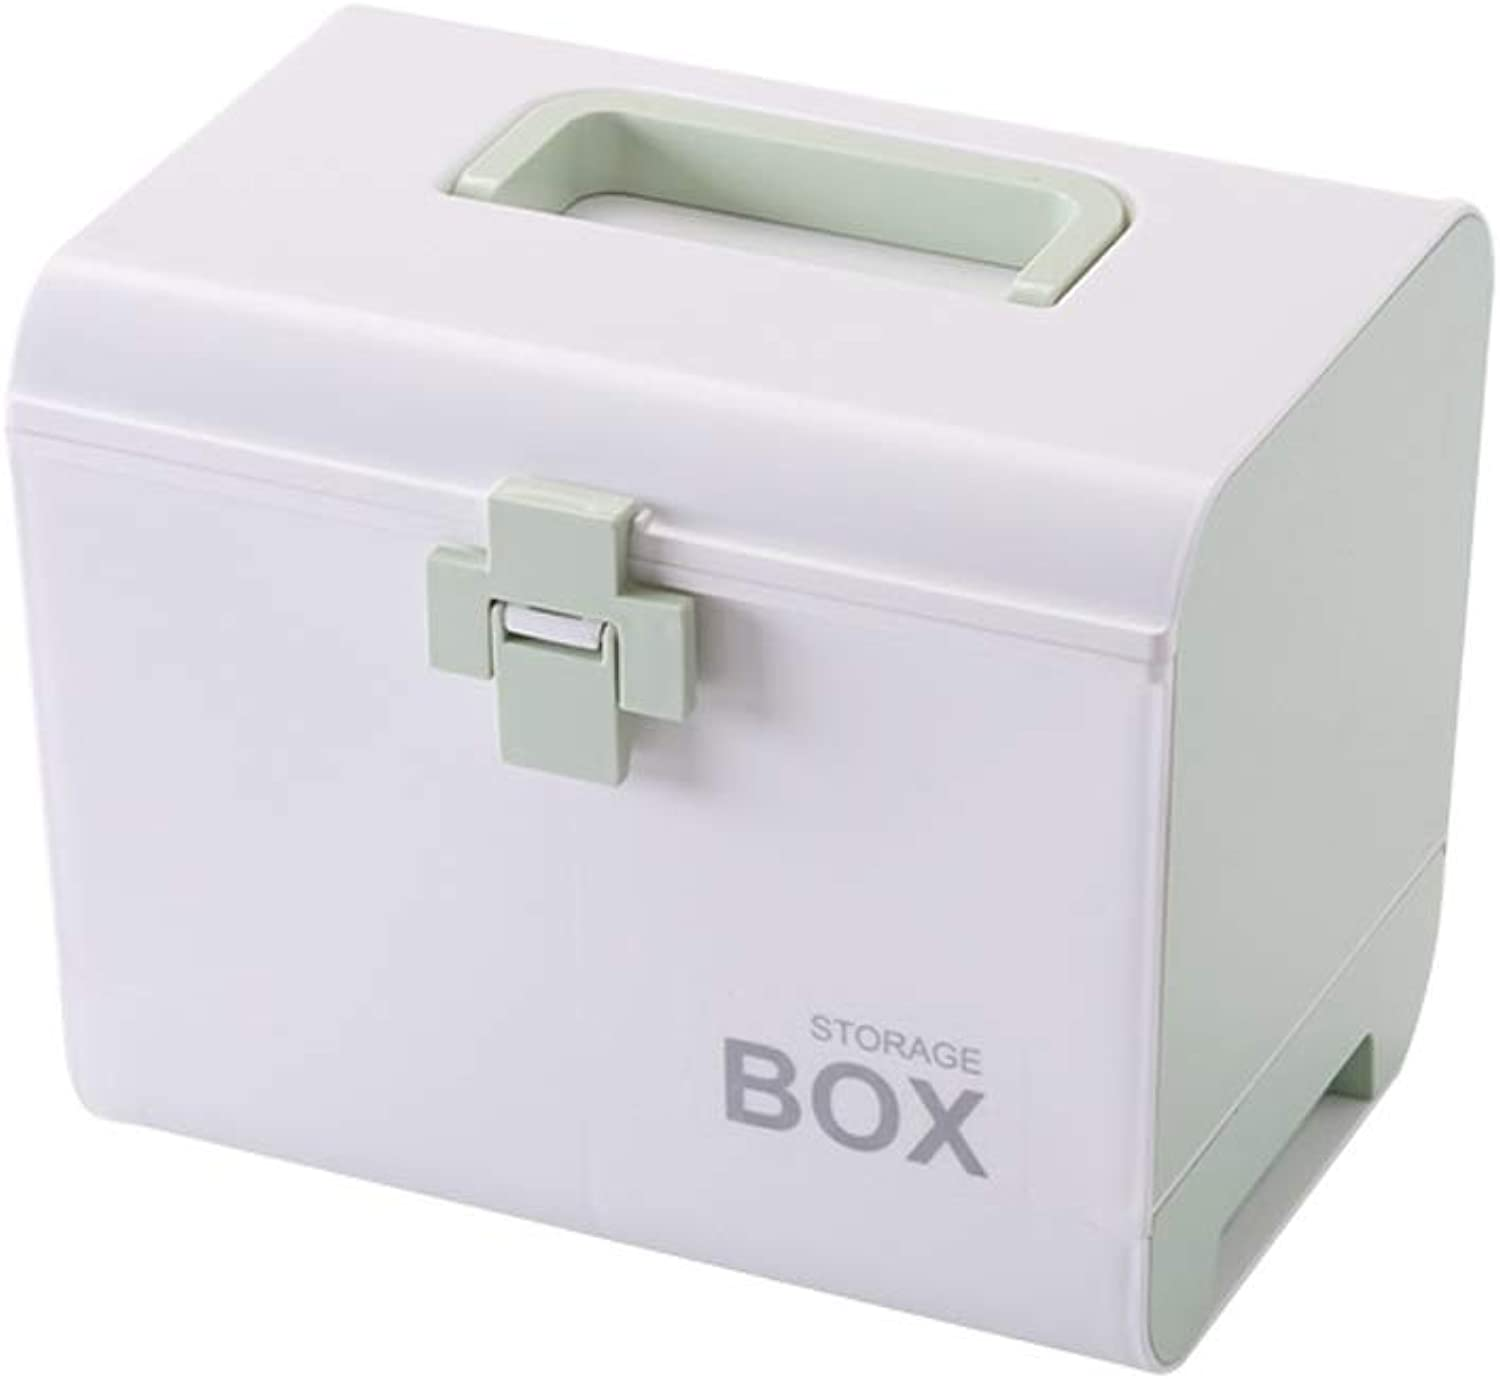 Djyyh First Aid Case Medical Container with Small Cubicle, Emergency Cabinet Storage Pill Container Box (color   Green)